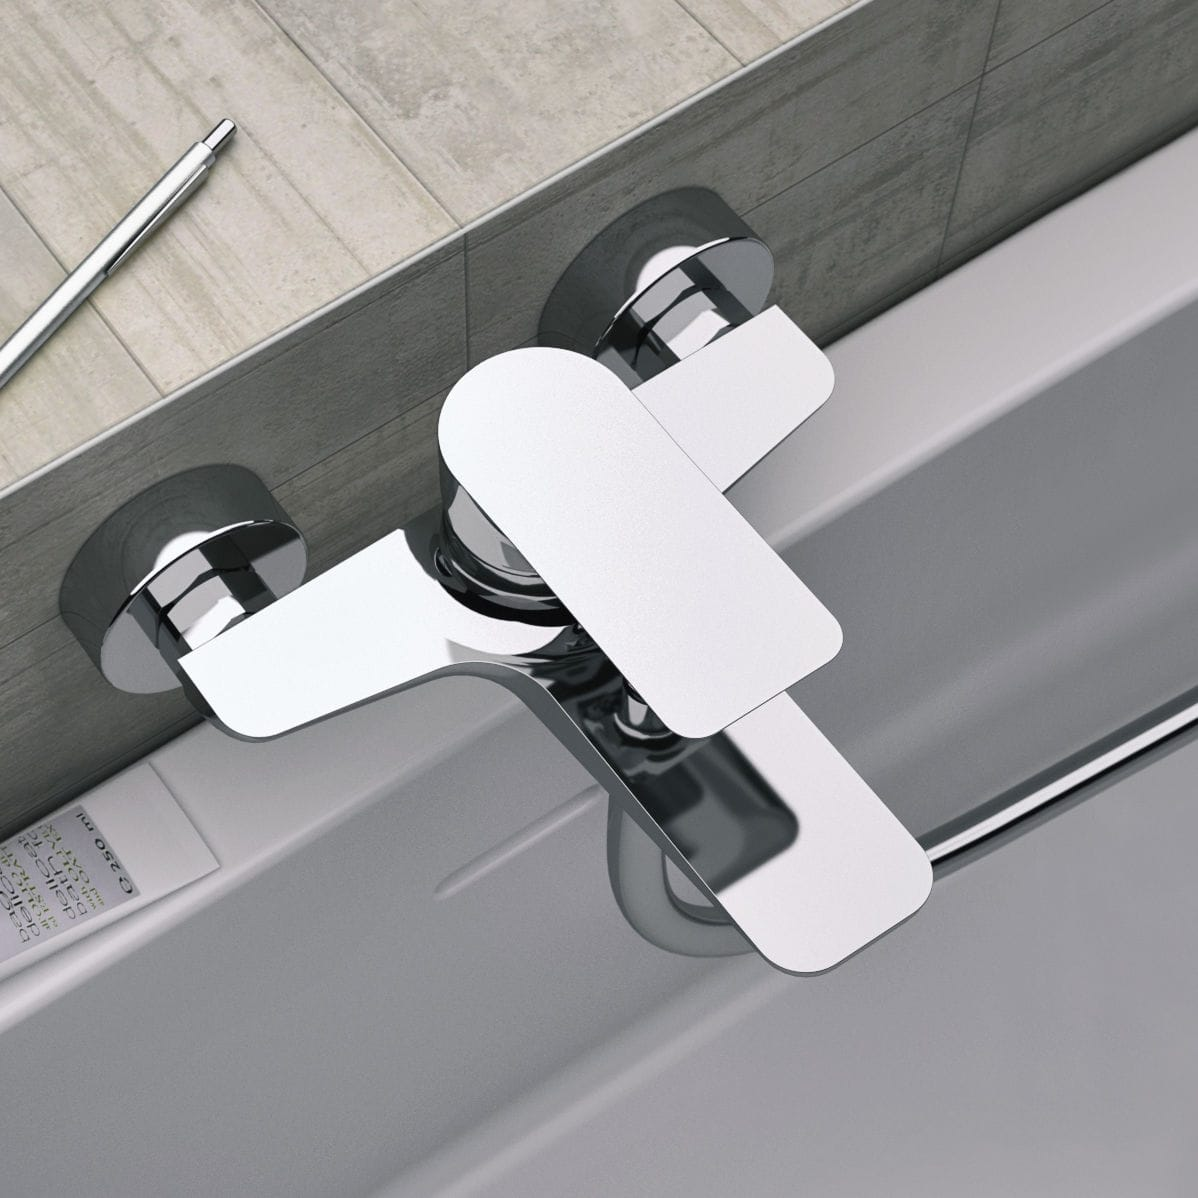 Bathtub mixer tap / wall-mounted / chromed metal / chrome-plated ...